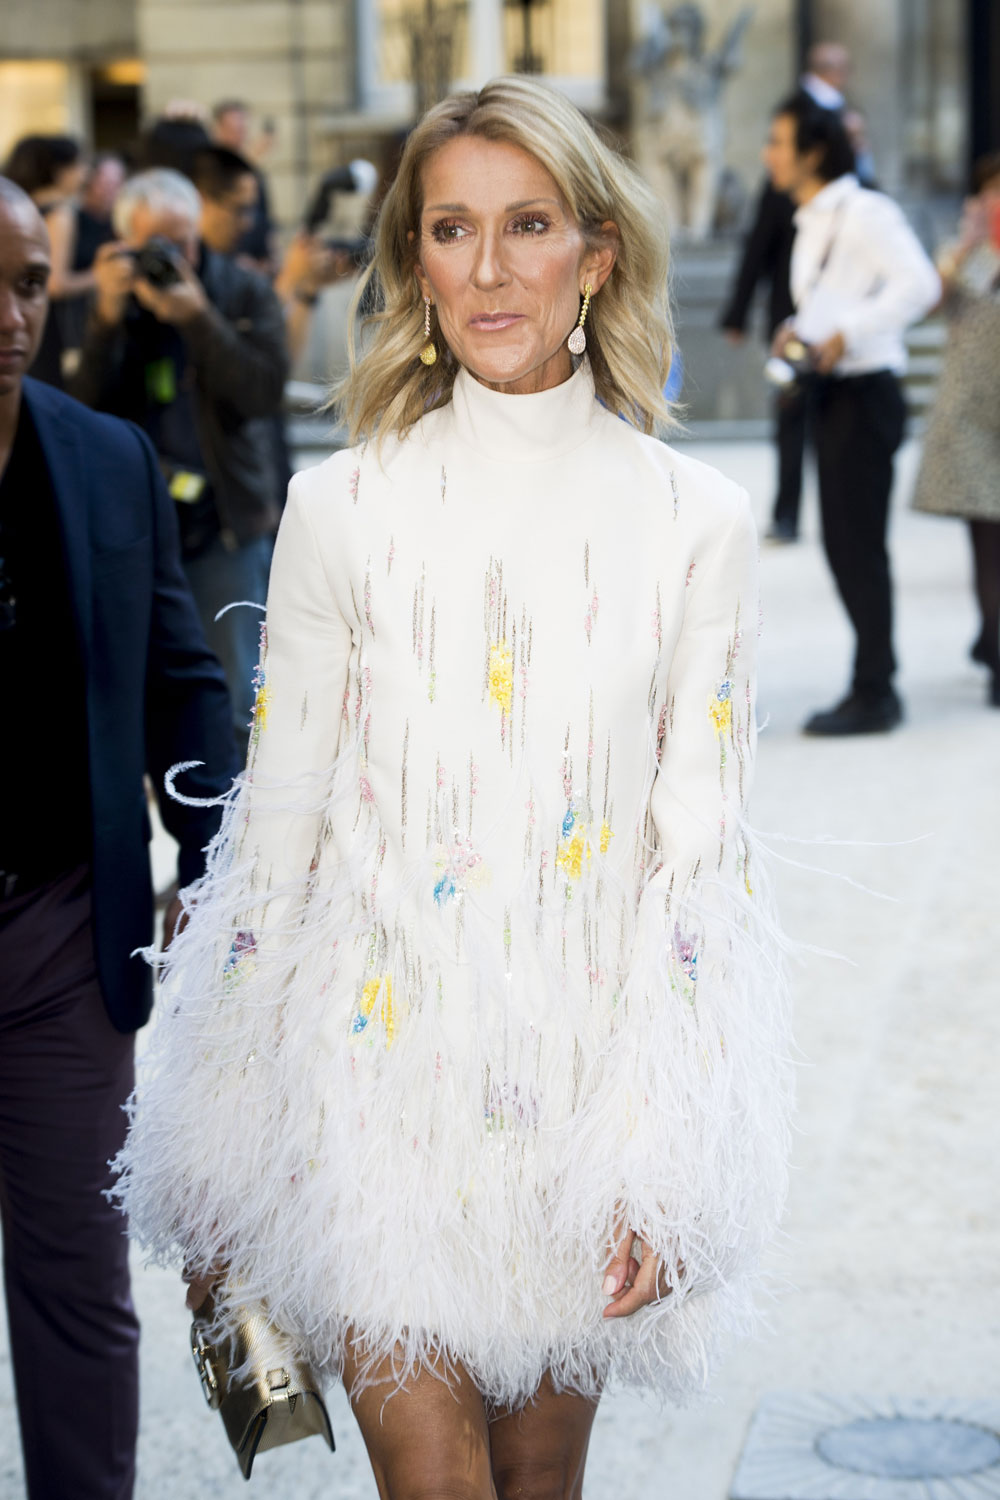 Celine Dion: fashion, grooming, hair and nails change your demeanor